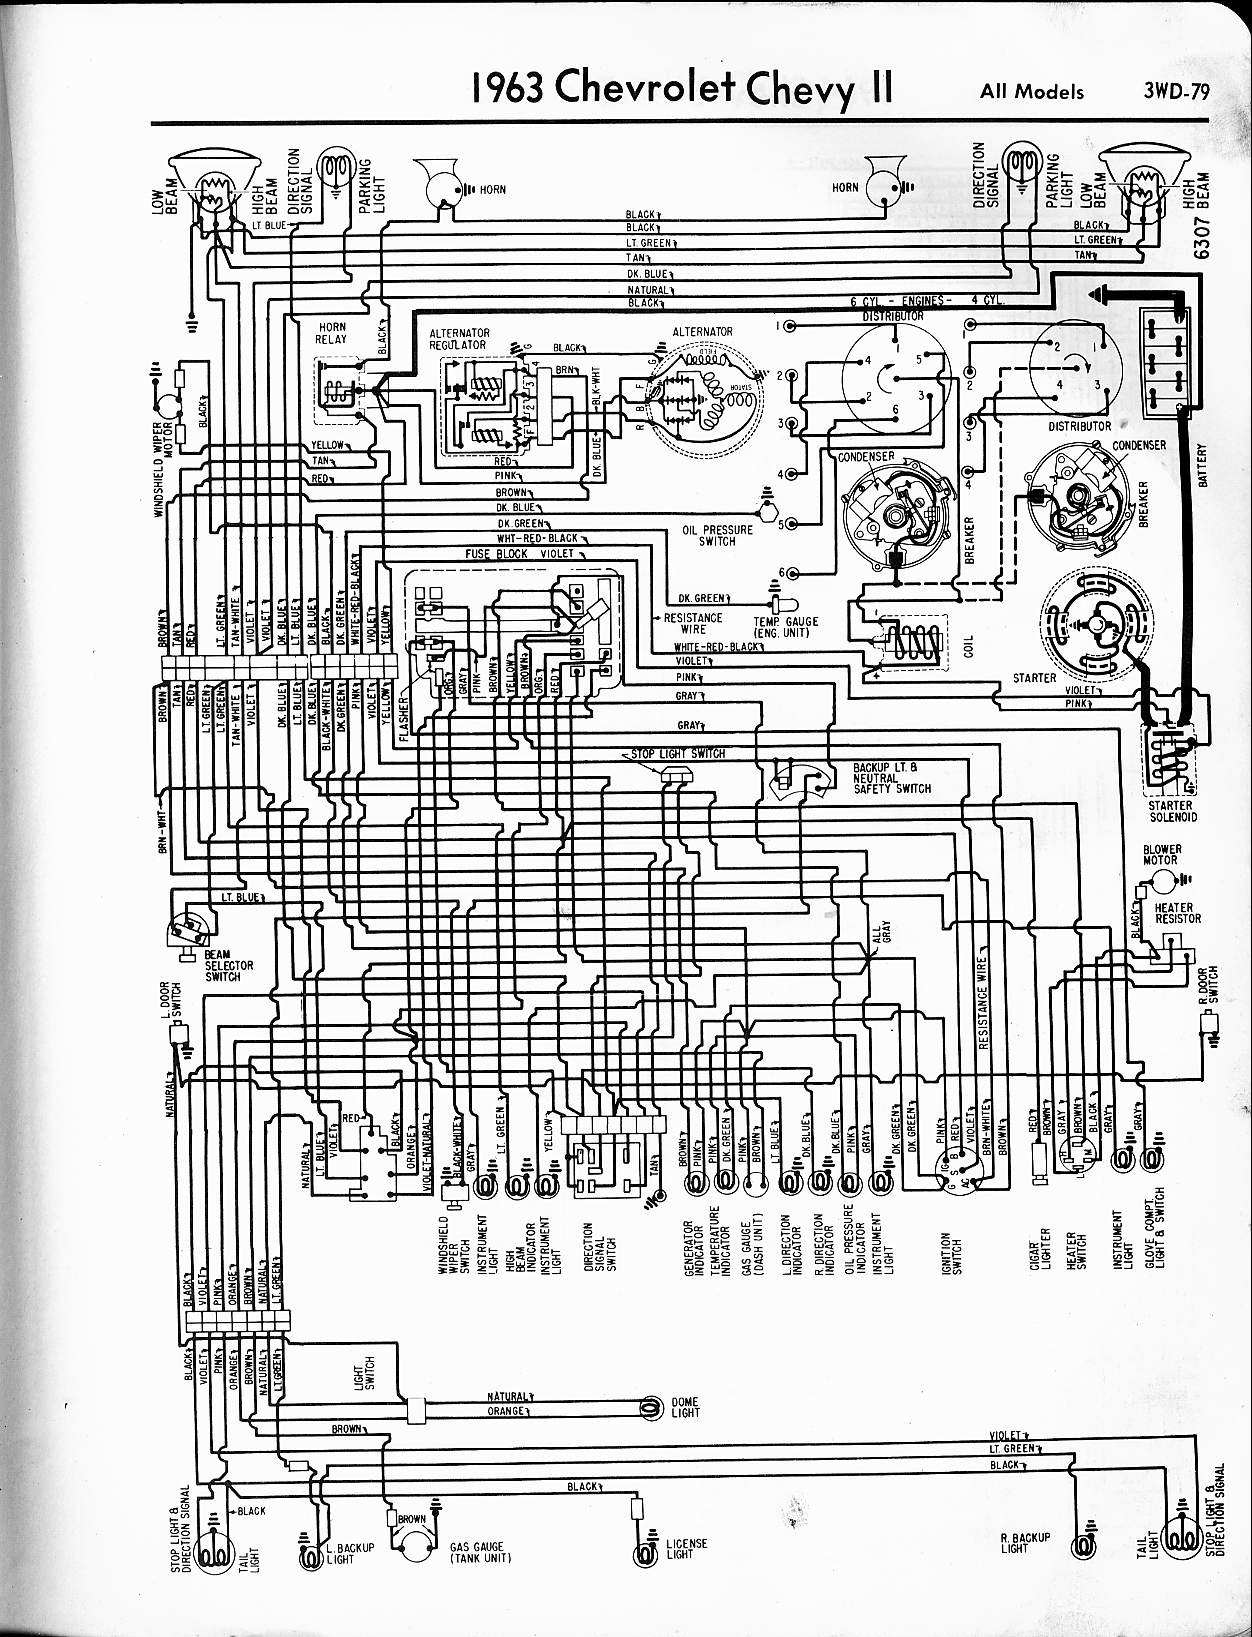 Drag Car Wiring 1970 El Camino Diagram 1973 Libraries Racing Engine Diagrams